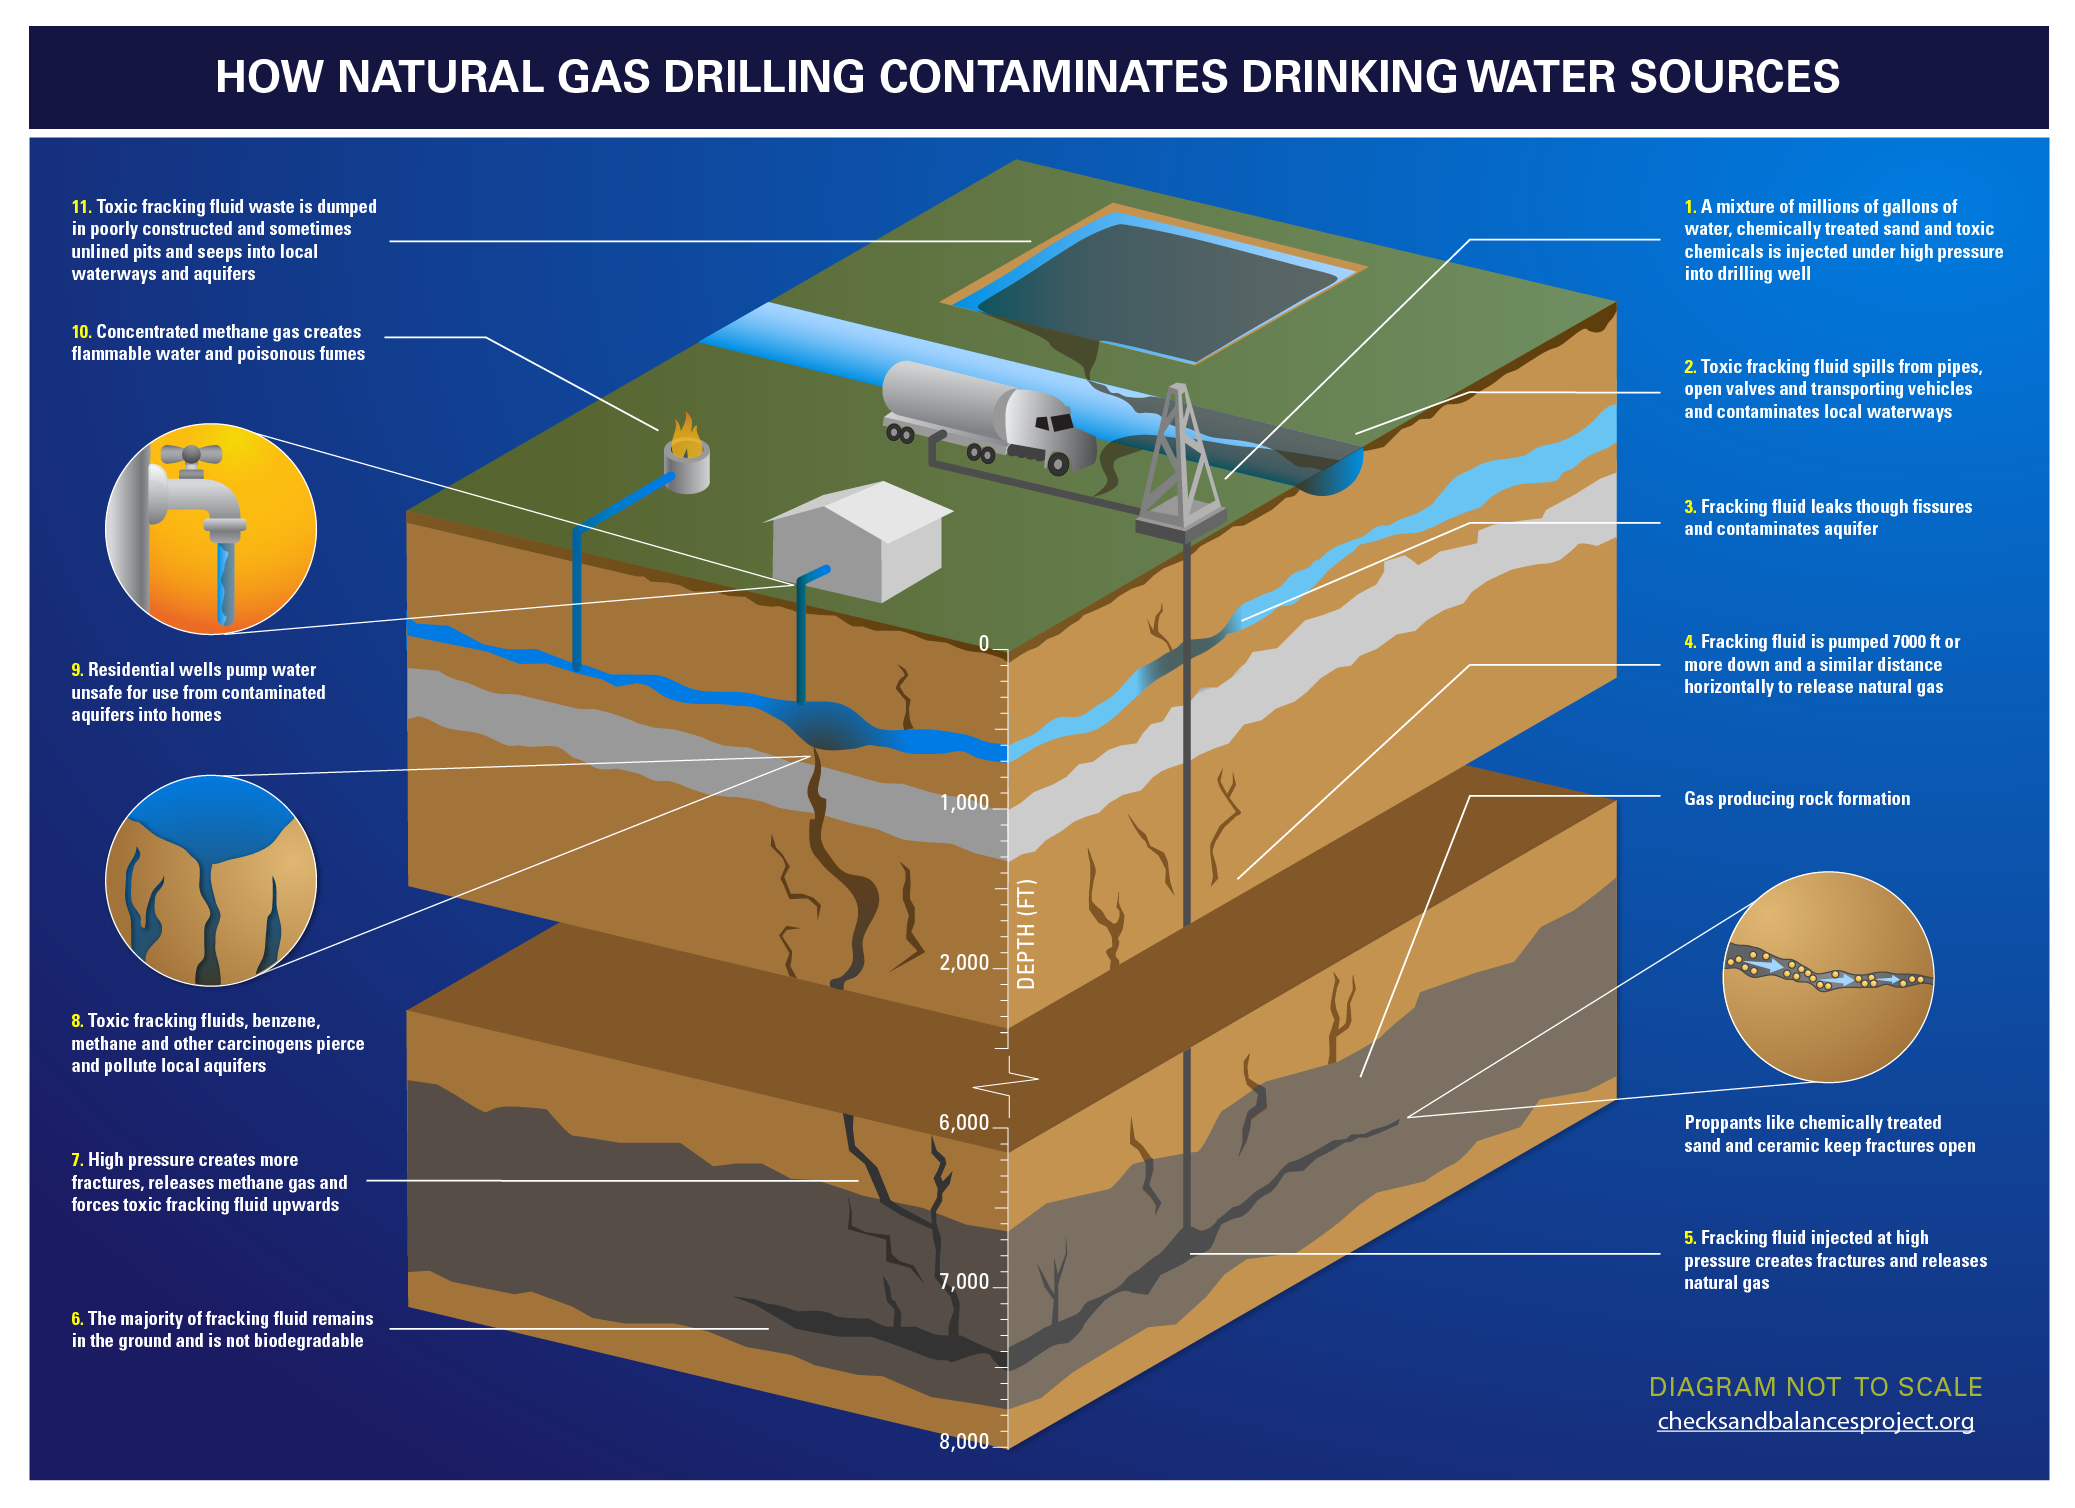 Why Is Natural Gas Good